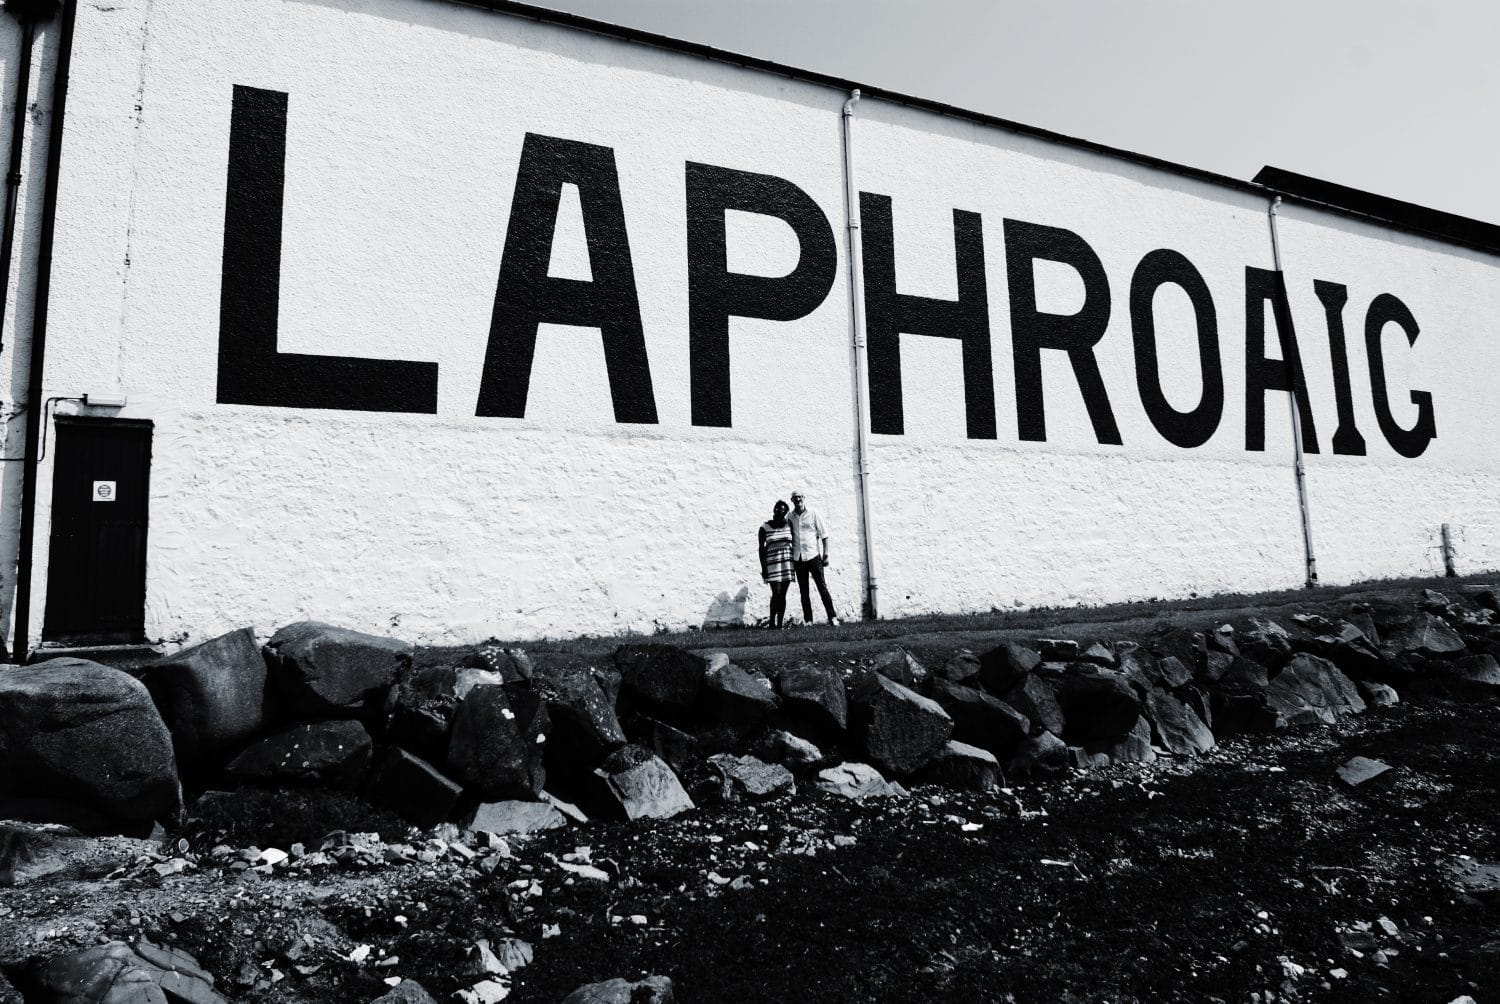 Laphroaig Distillery during Feis Ile